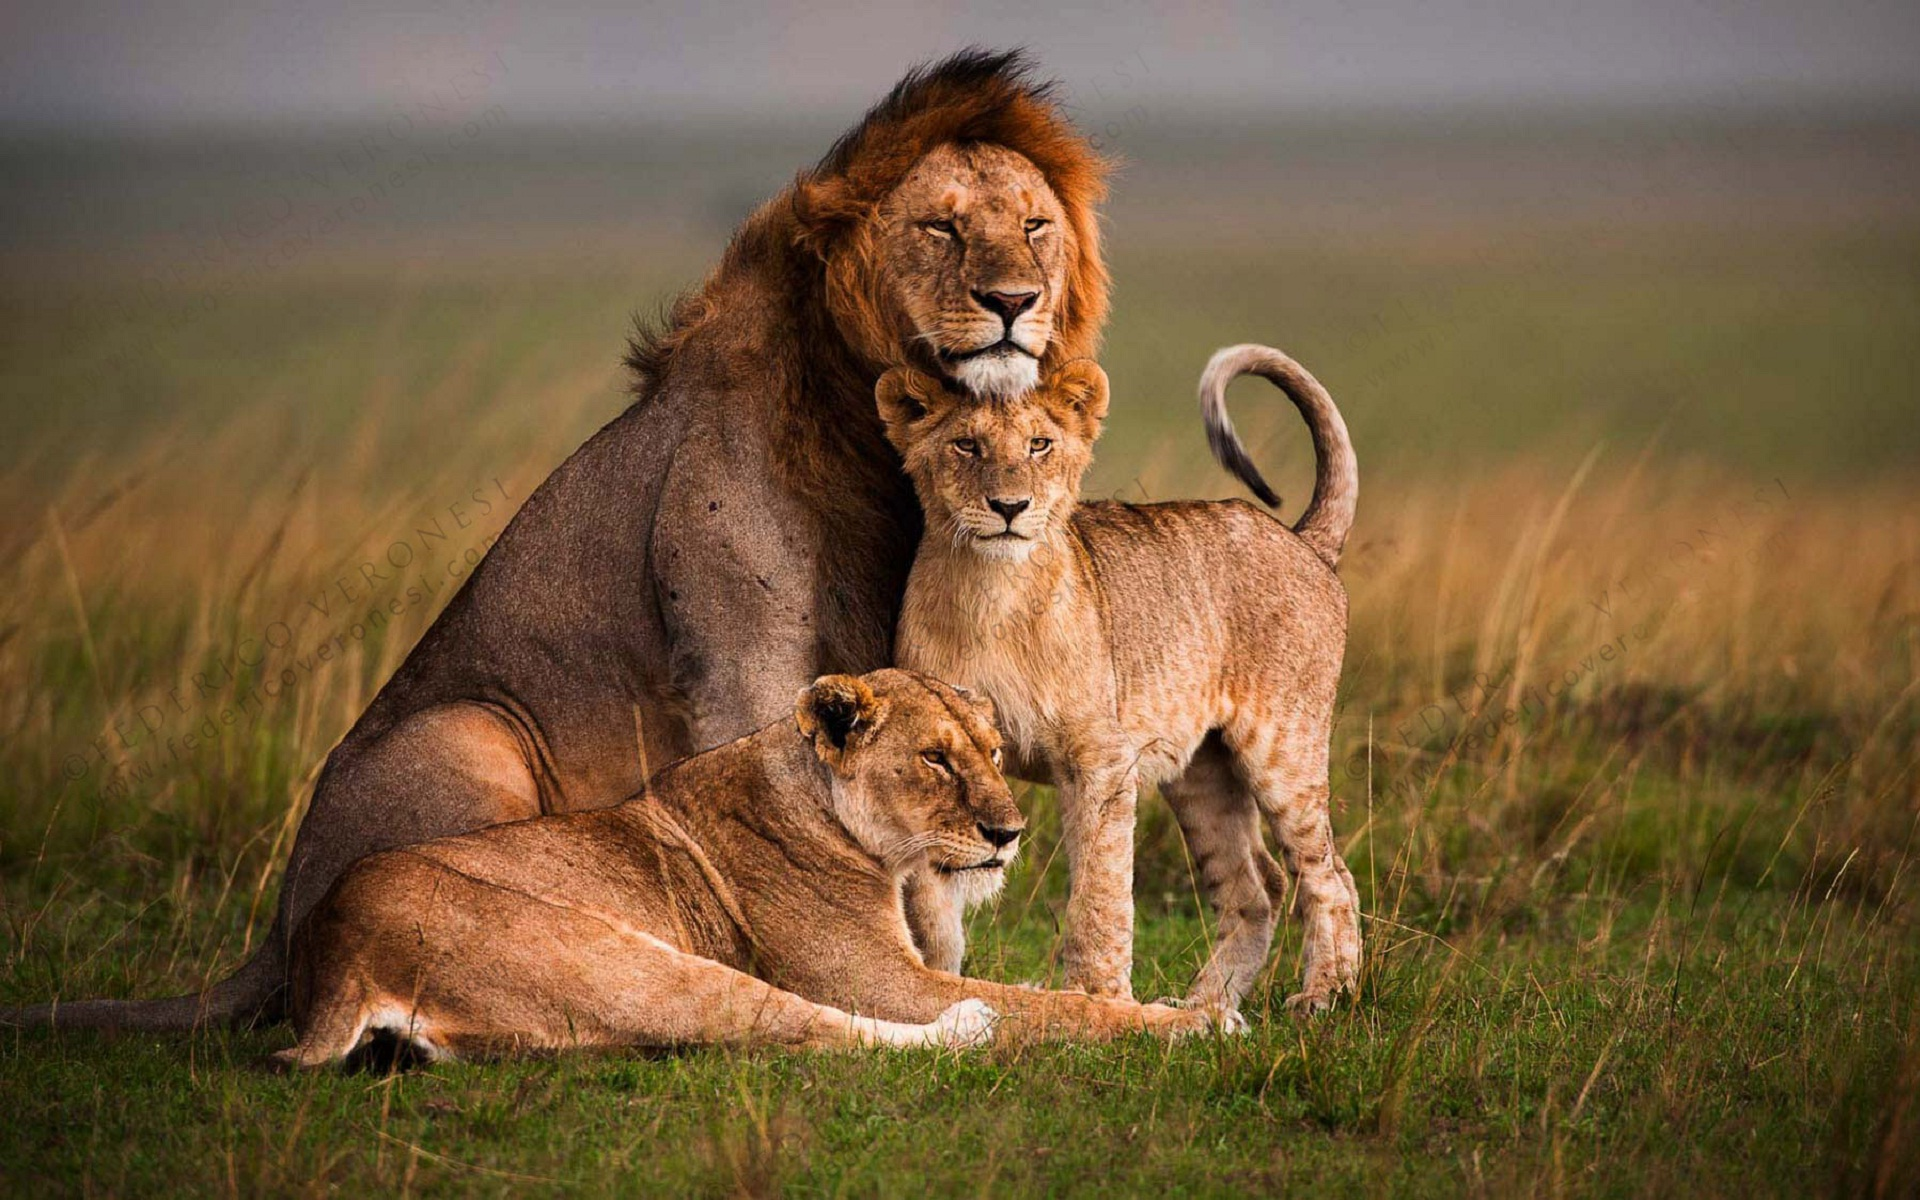 Lion family in forest best latest animal photography | HD Wallpapers ...